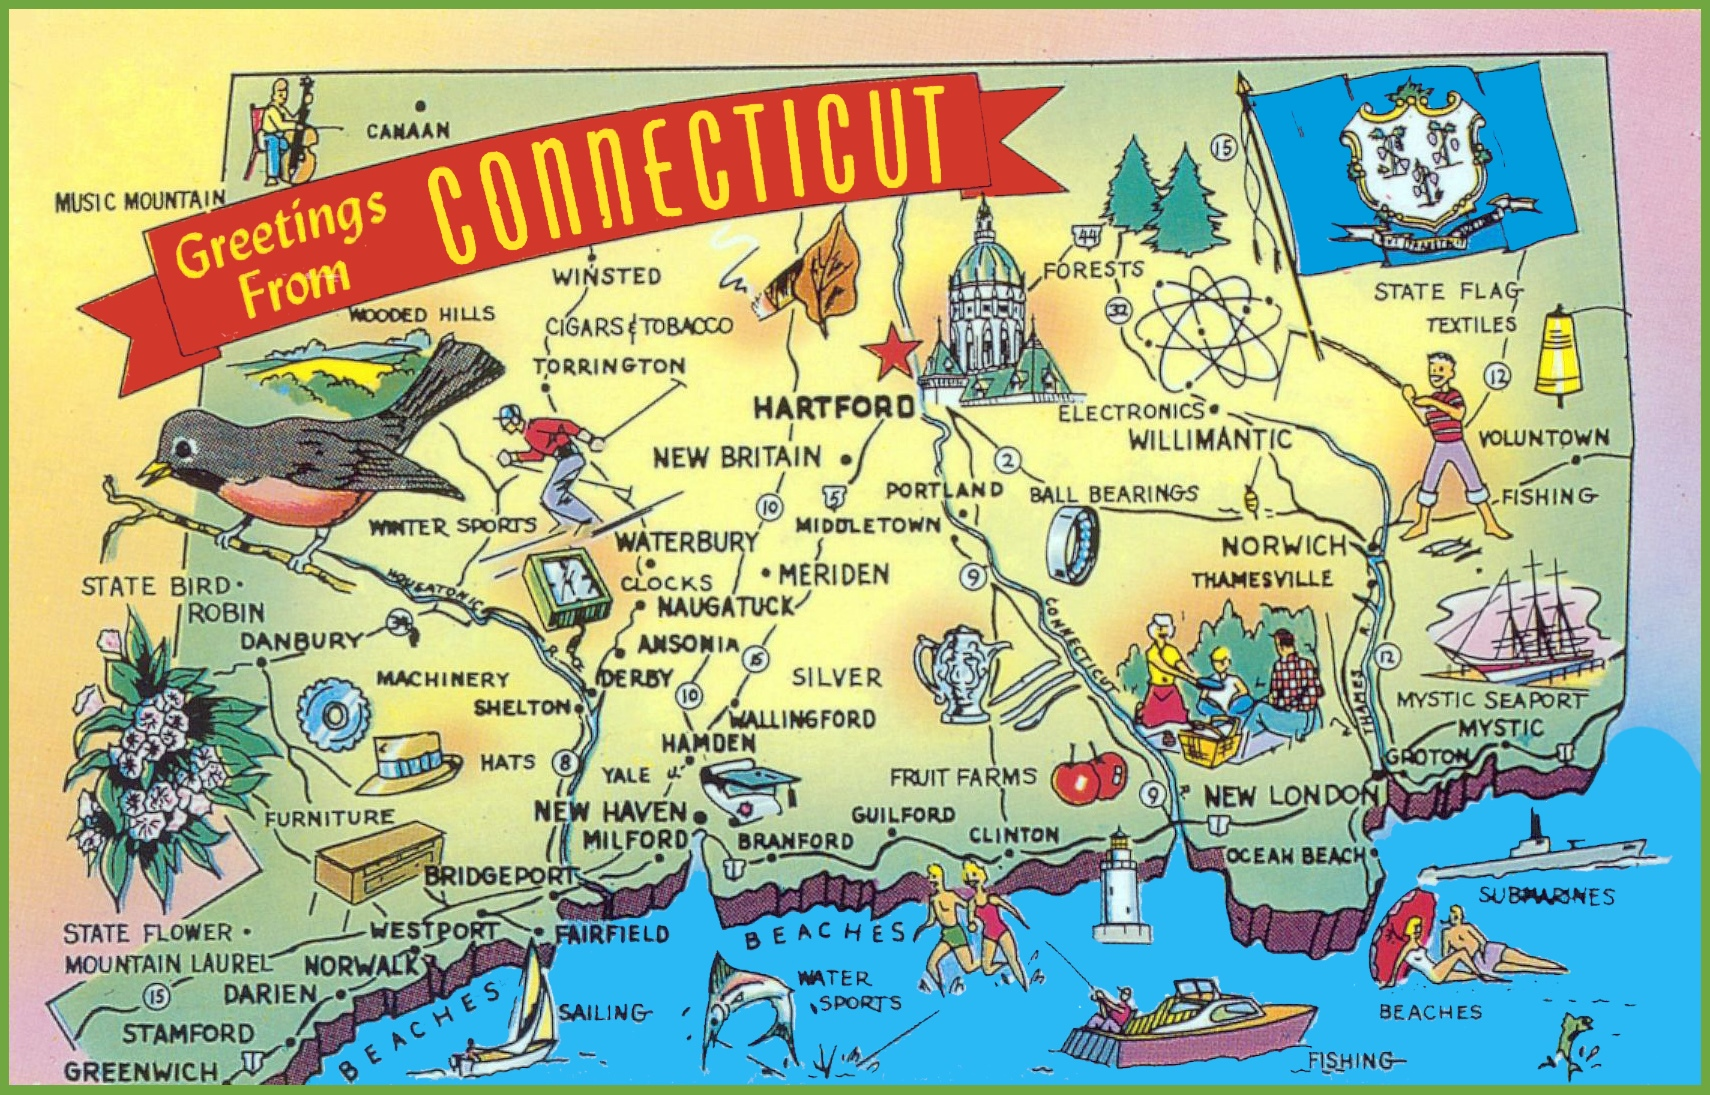 Illustrated tourist map of Connecticut